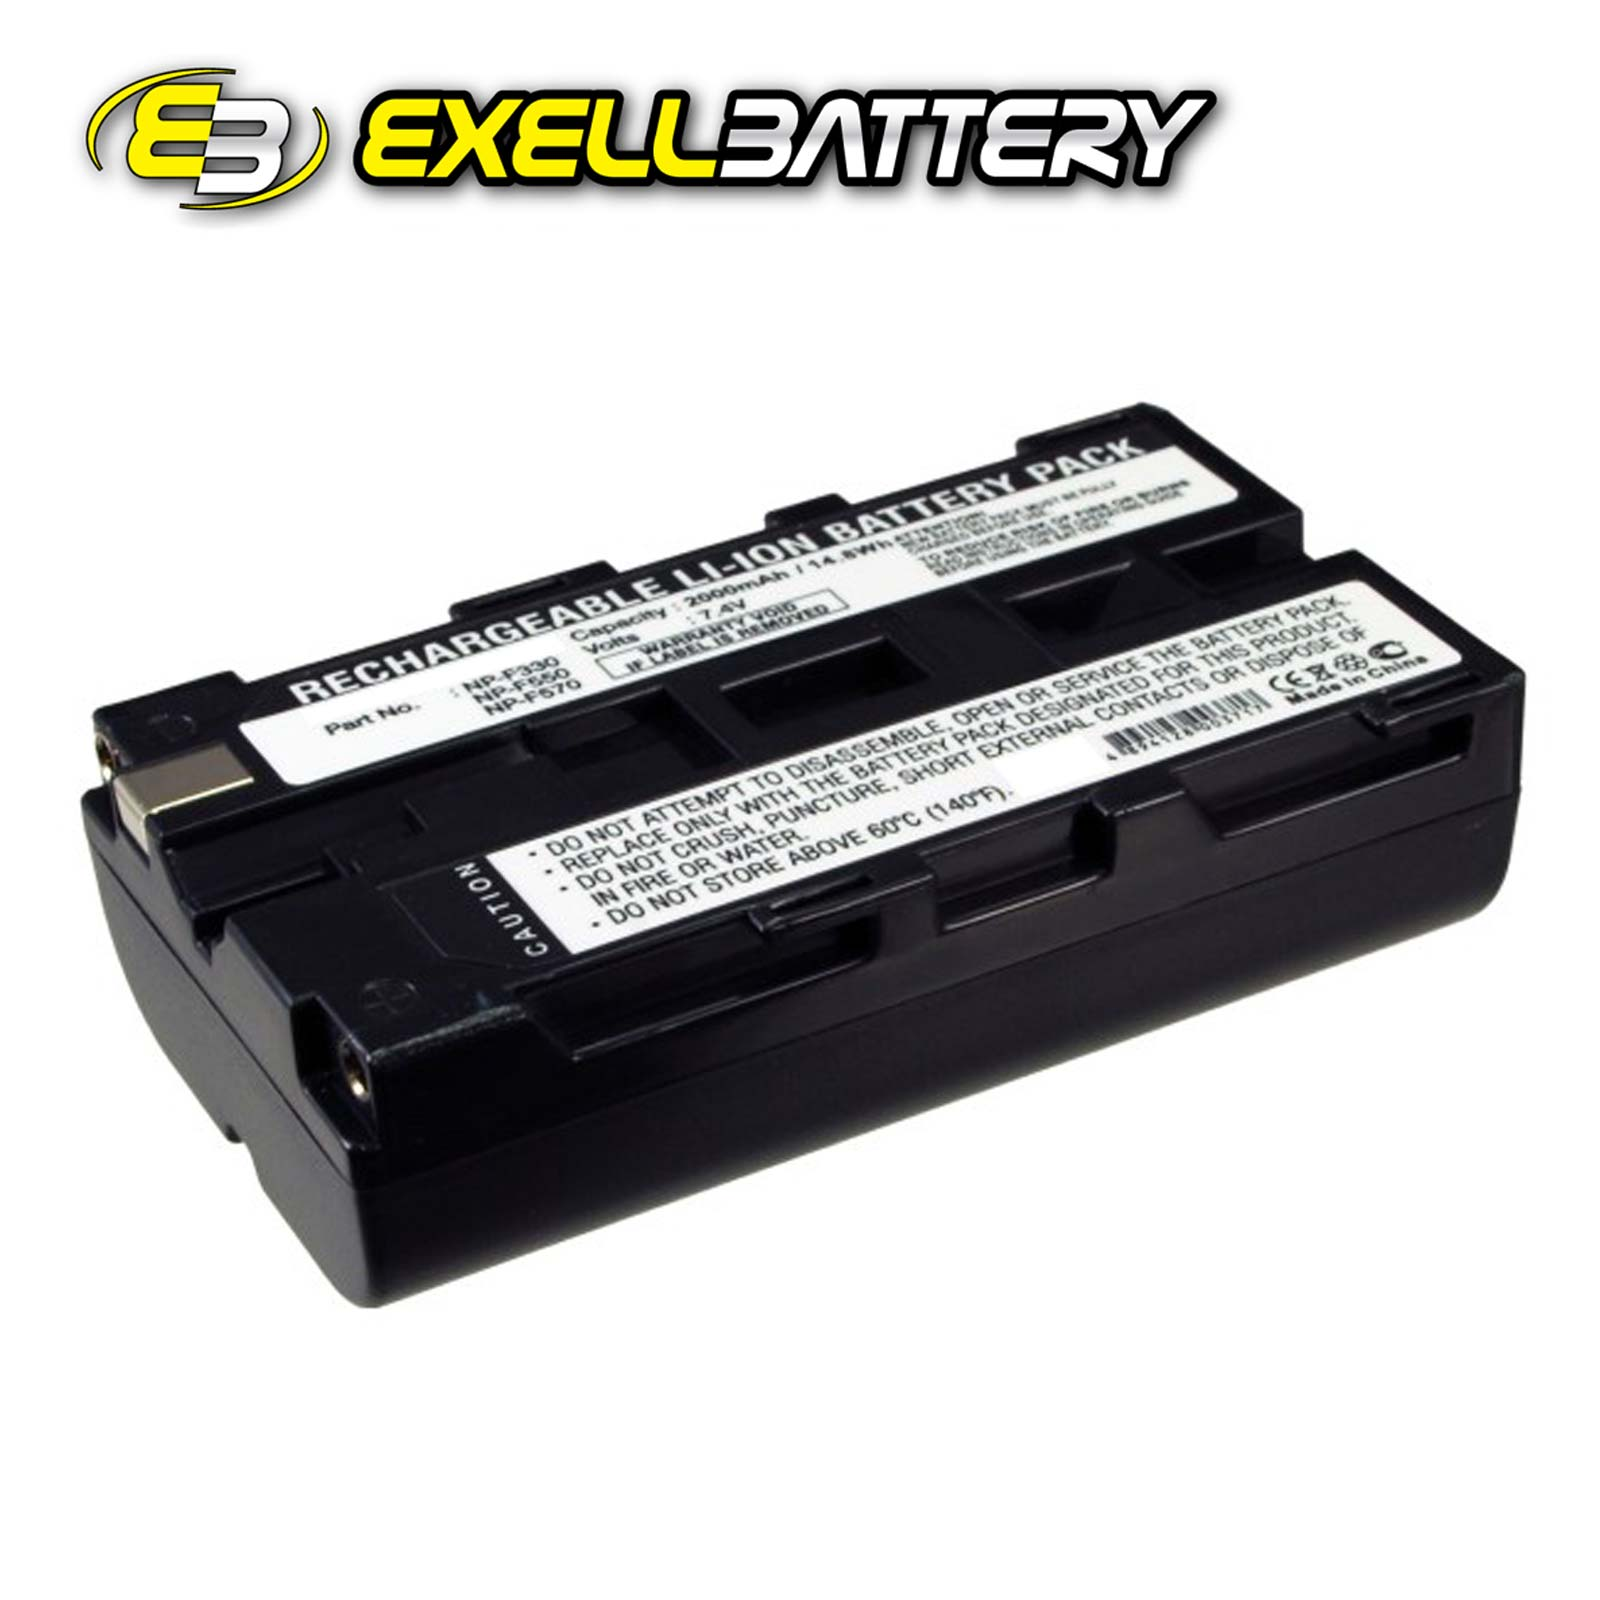 7.4V 2000mAh Li-Ion Digital Camera Battery Fits Sony CCD-TR413